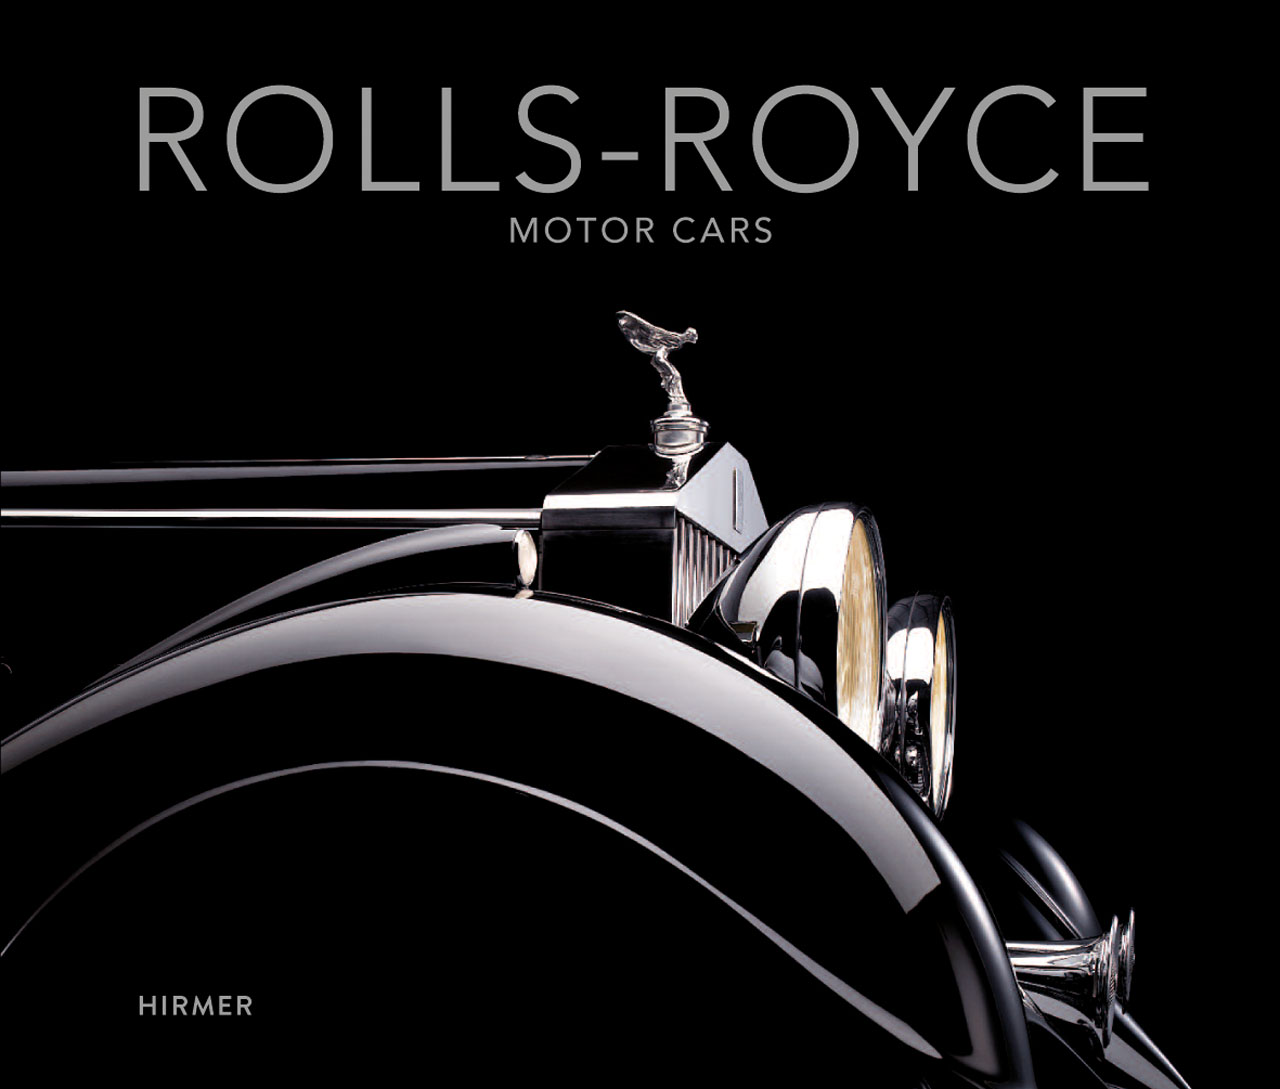 Rolls-Royce Motor Cars: Strive for Perfection